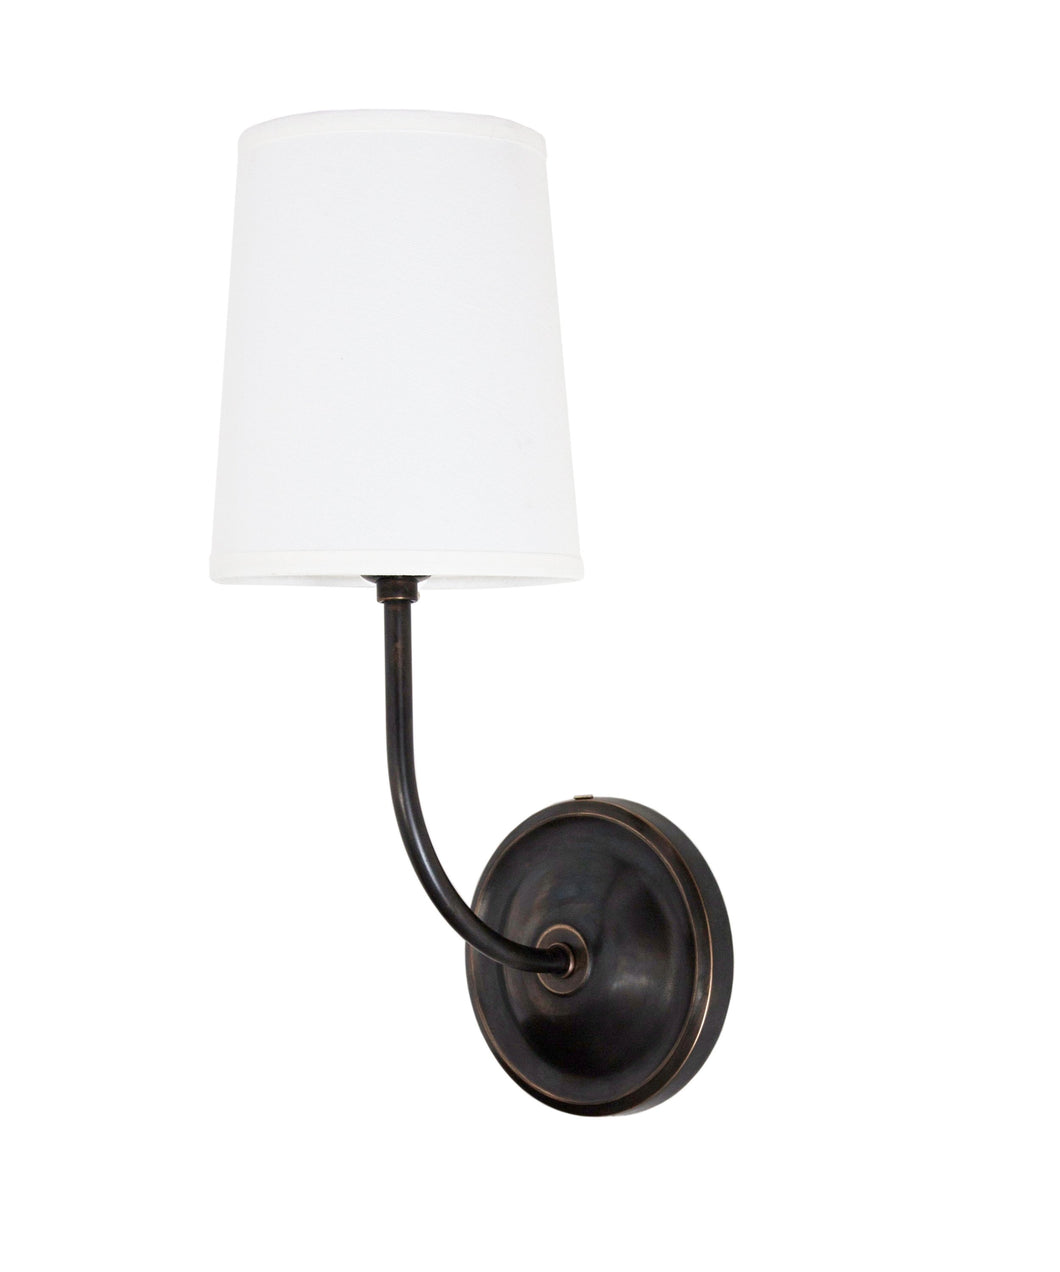 Sheffield Wall Sconce with Linen Shade, Bronze